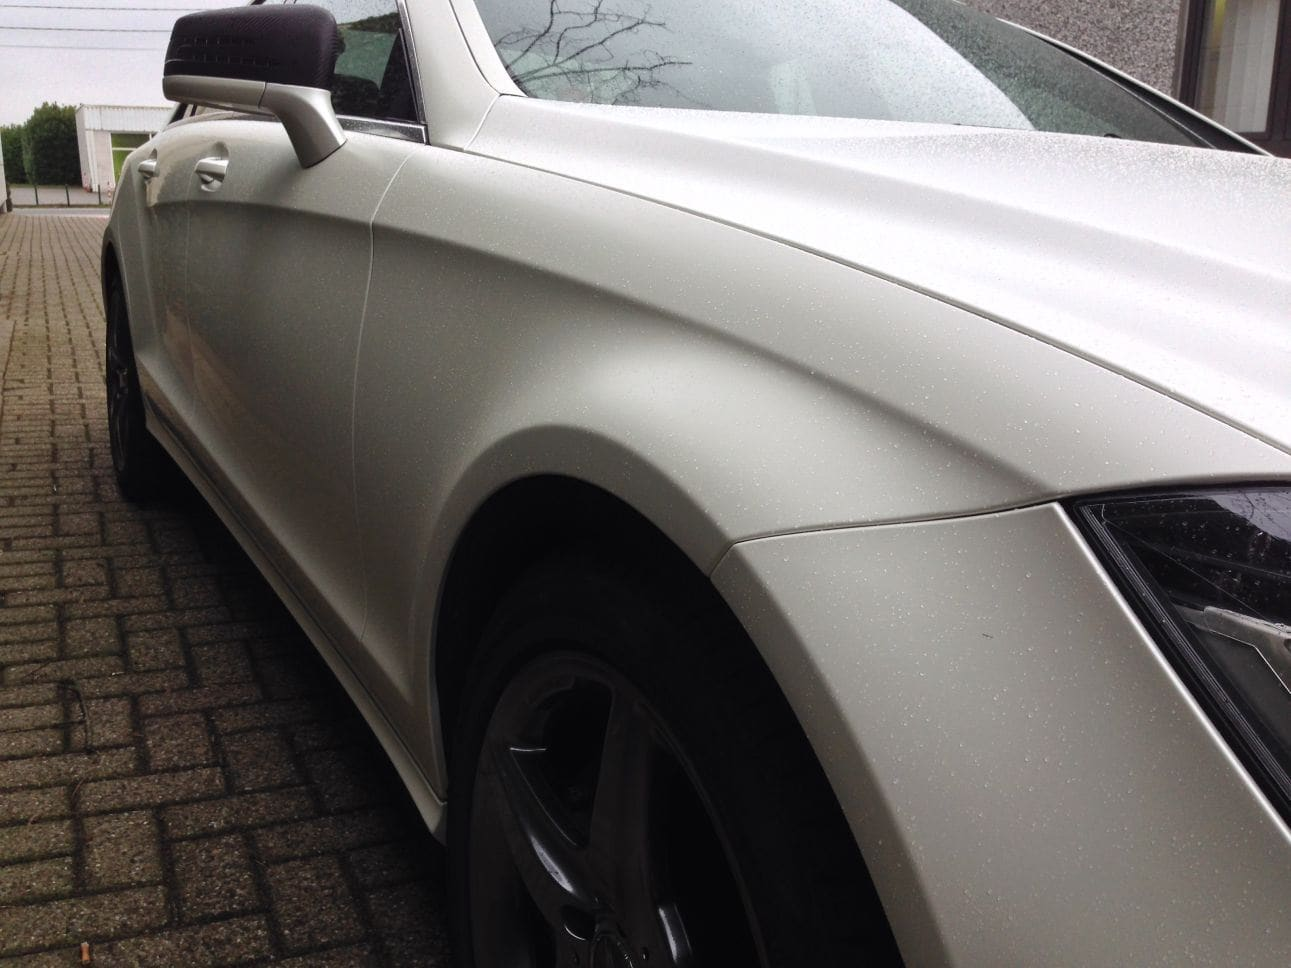 Mercedes CLS met White Satin Pearl Wrap, Carwrapping door Wrapmyride.nu Foto-nr:6209, ©2021